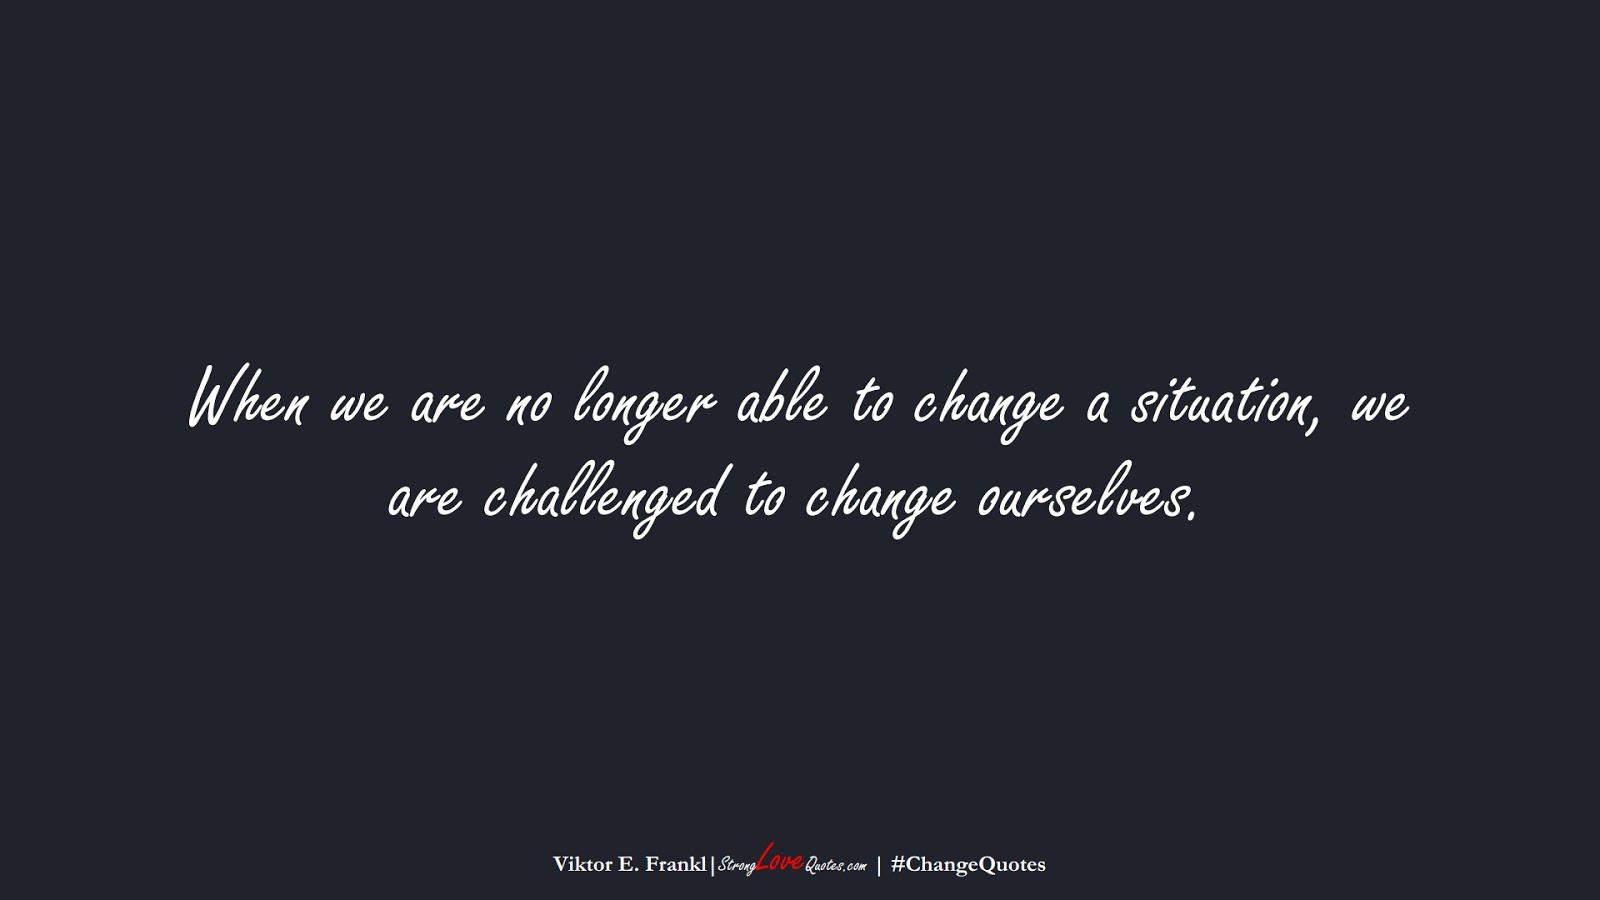 When we are no longer able to change a situation, we are challenged to change ourselves. (Viktor E. Frankl);  #ChangeQuotes